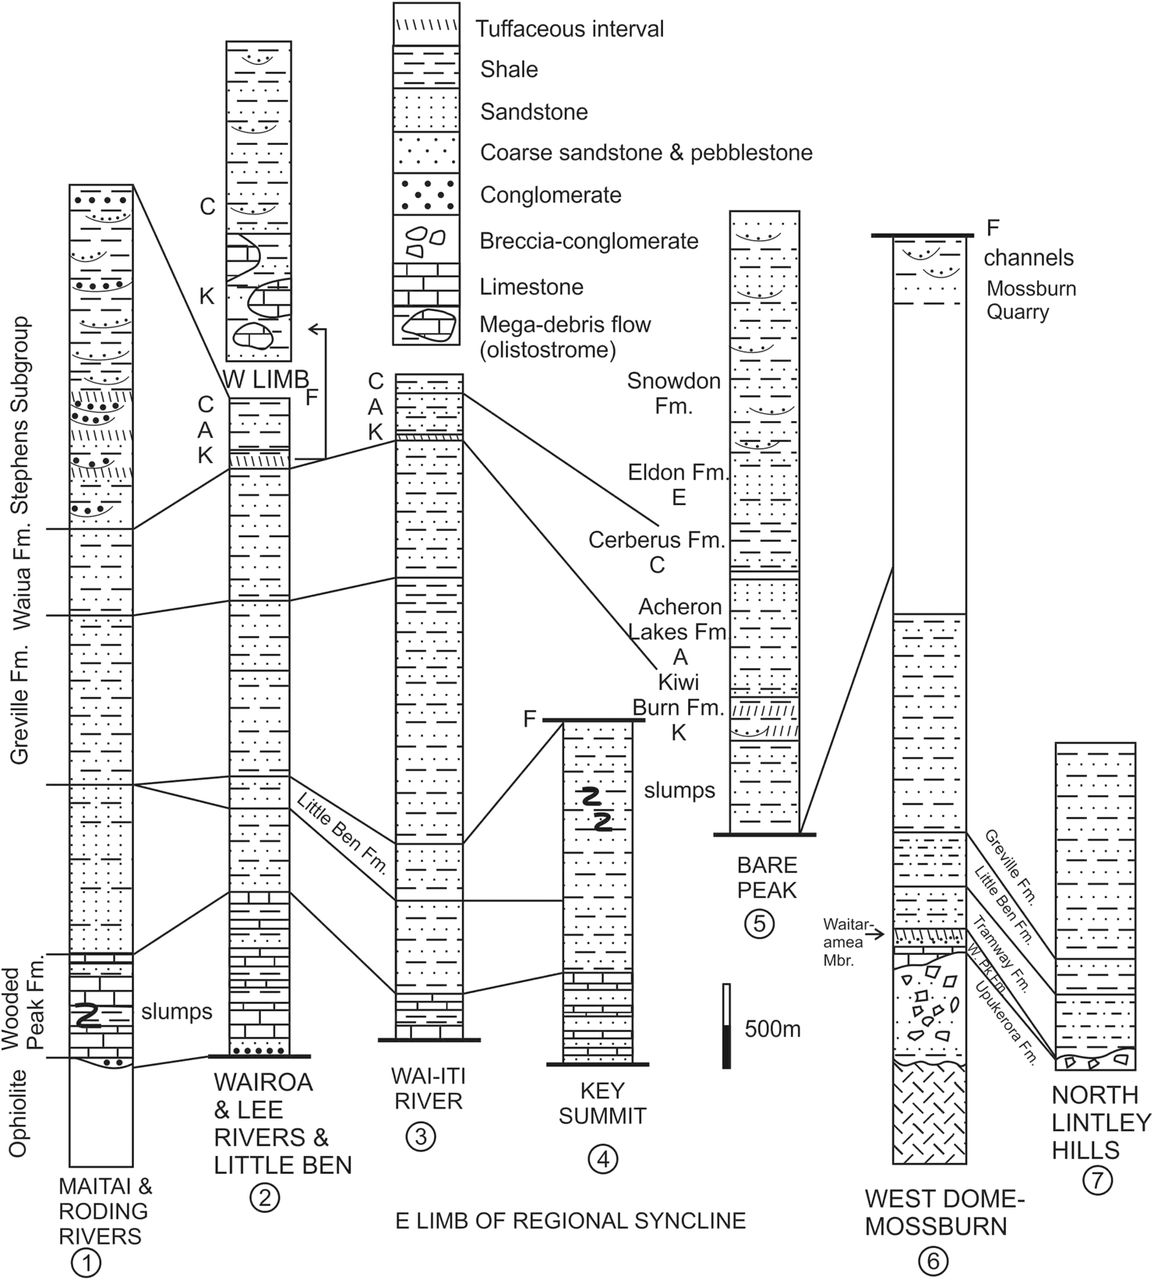 Chapter 9 Sedimentary development of the Mid-Permian–Mid-Triassic